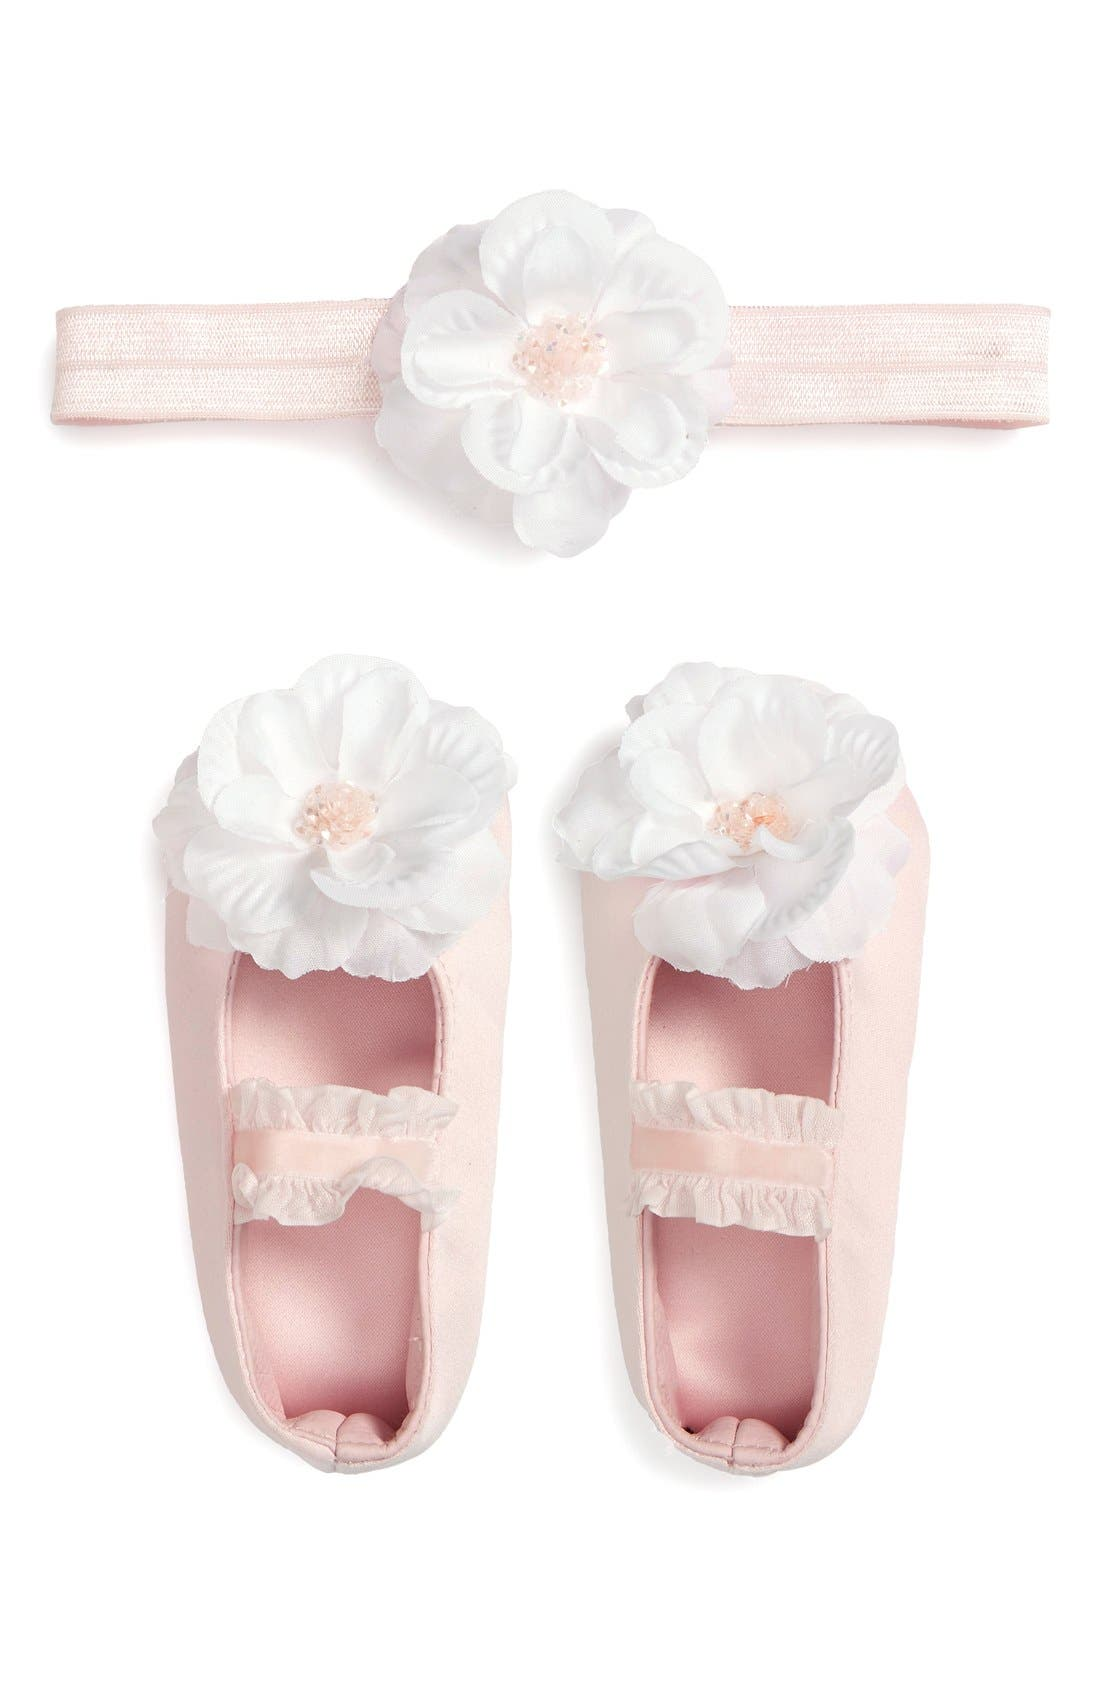 Alternate Image 1 Selected - PLH Bows & Laces Headband & Shoes Gift Set (Infant)